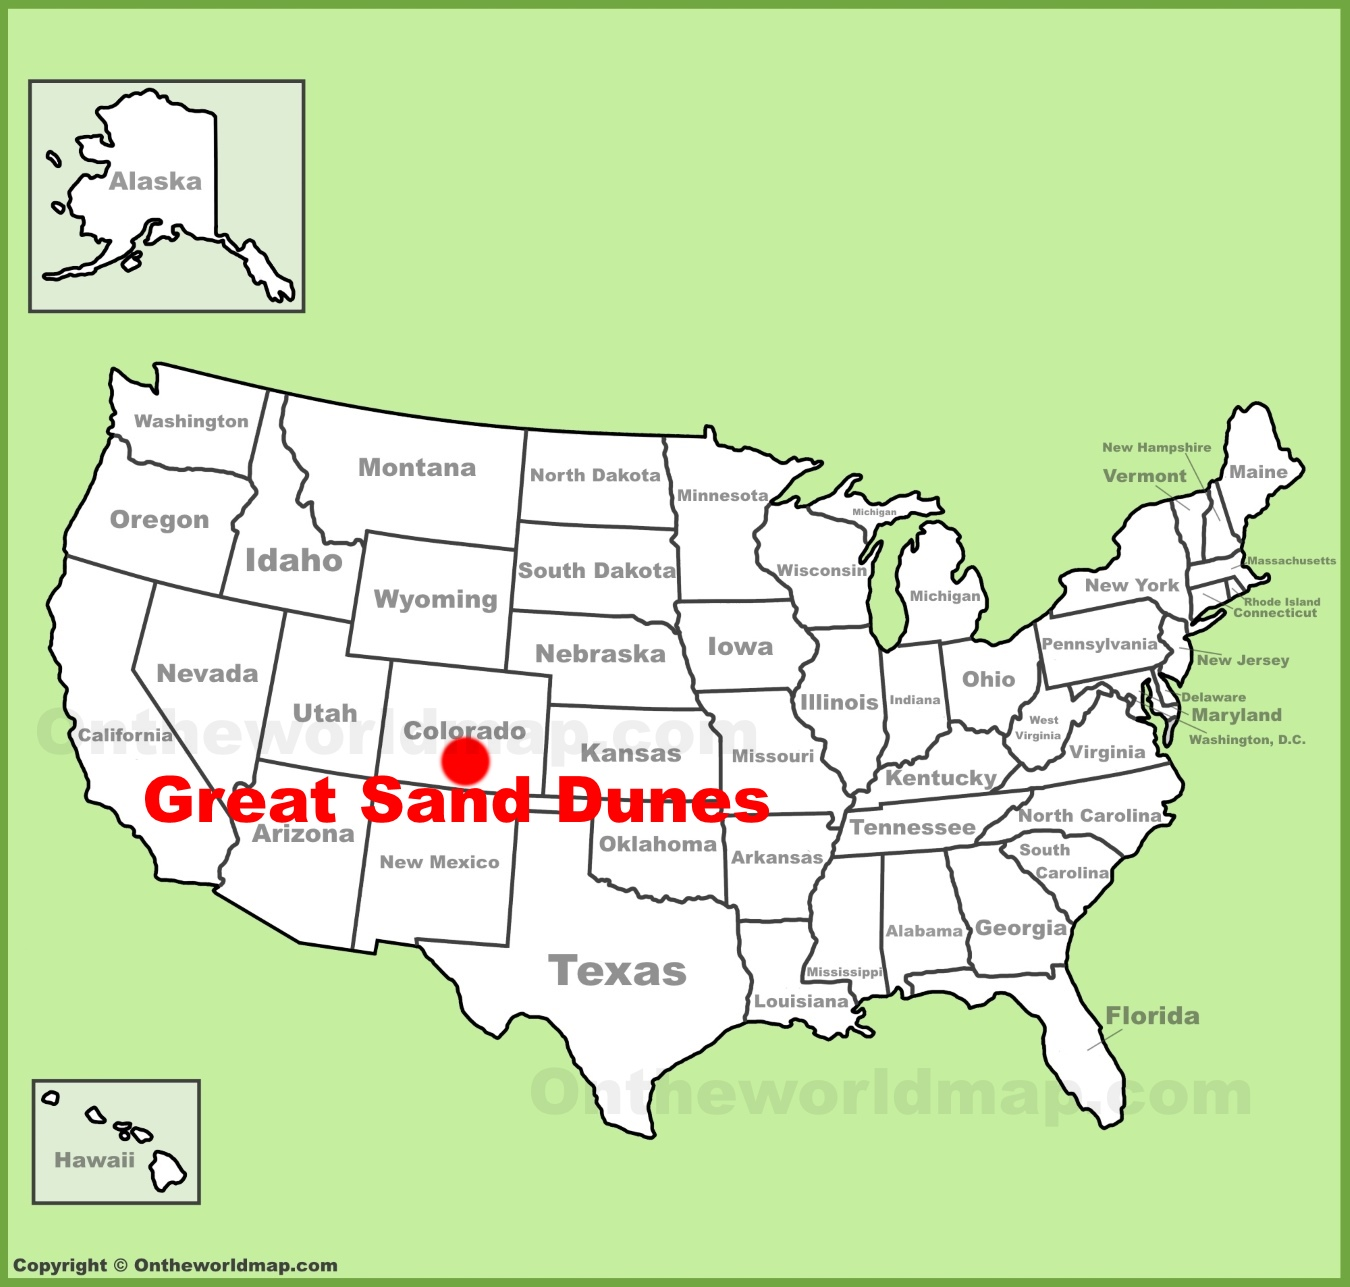 Great Sand Dunes Maps | USA | Maps of Great Sand Dunes ... on california national park map, sand flats campground calaveras county, canyons national park map, moon national park map, colorado map, volcanoes national park map, mexico national park map, sand creek colorado, namibia map, river national park map, grasslands national park map, v&t railroad map, black canyon of gunnison map, namib desert map, garden of the gods map,